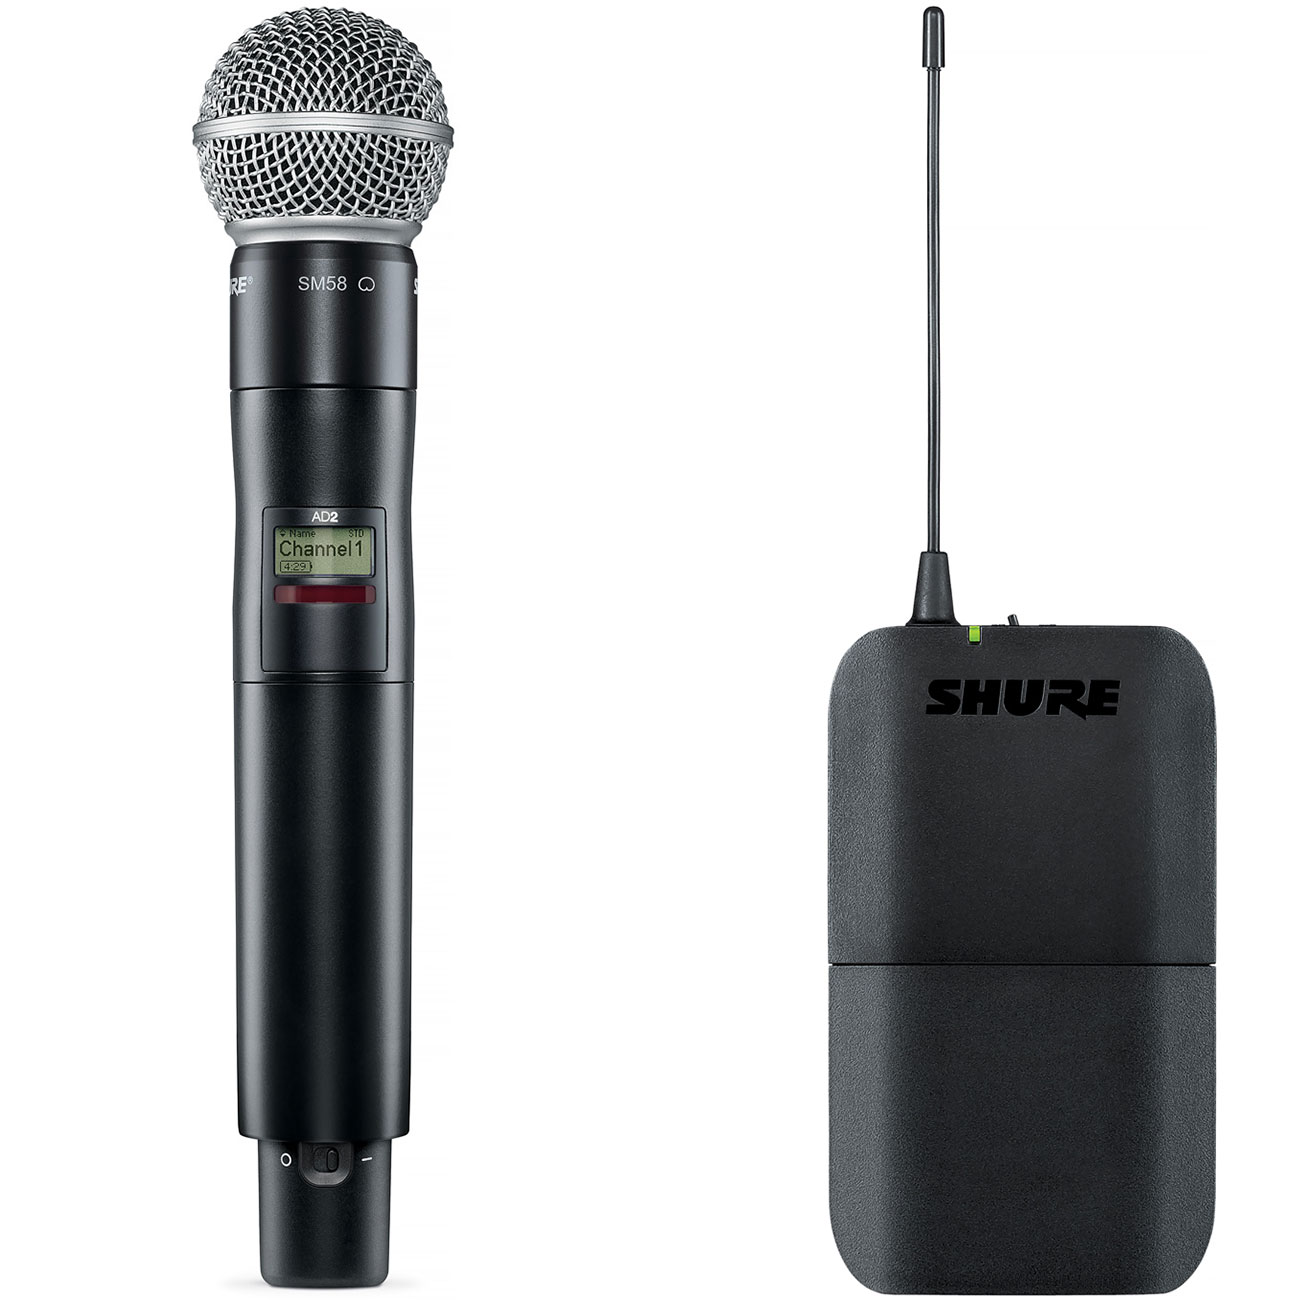 Shure BLX Handheld Transmitter with SM58 Microphone